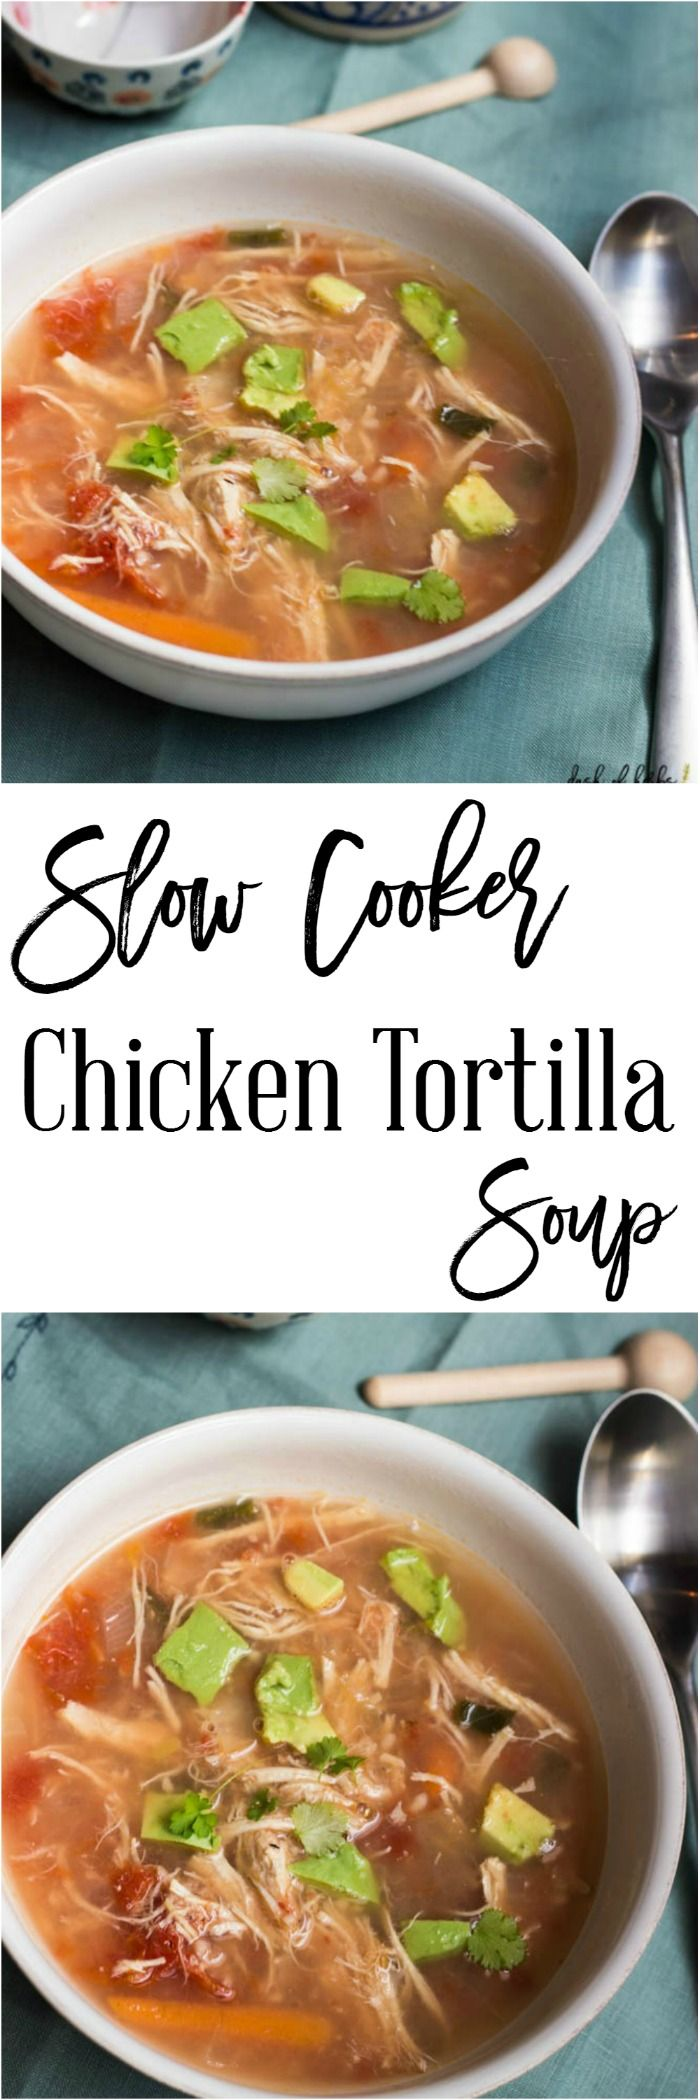 Slow Cooker Chicken Tortilla Soup - An easy lunch or dinner recipe for your family to enjoy.  It's only 2 SmartPoints per serving on Weight Watchers and is a healthy soup that fills you up.  The flavors of this soup are wonderful together and pack a punch in your mouth. http://dashofherbs.com/slow-cooker-chicken-tortilla-soup/